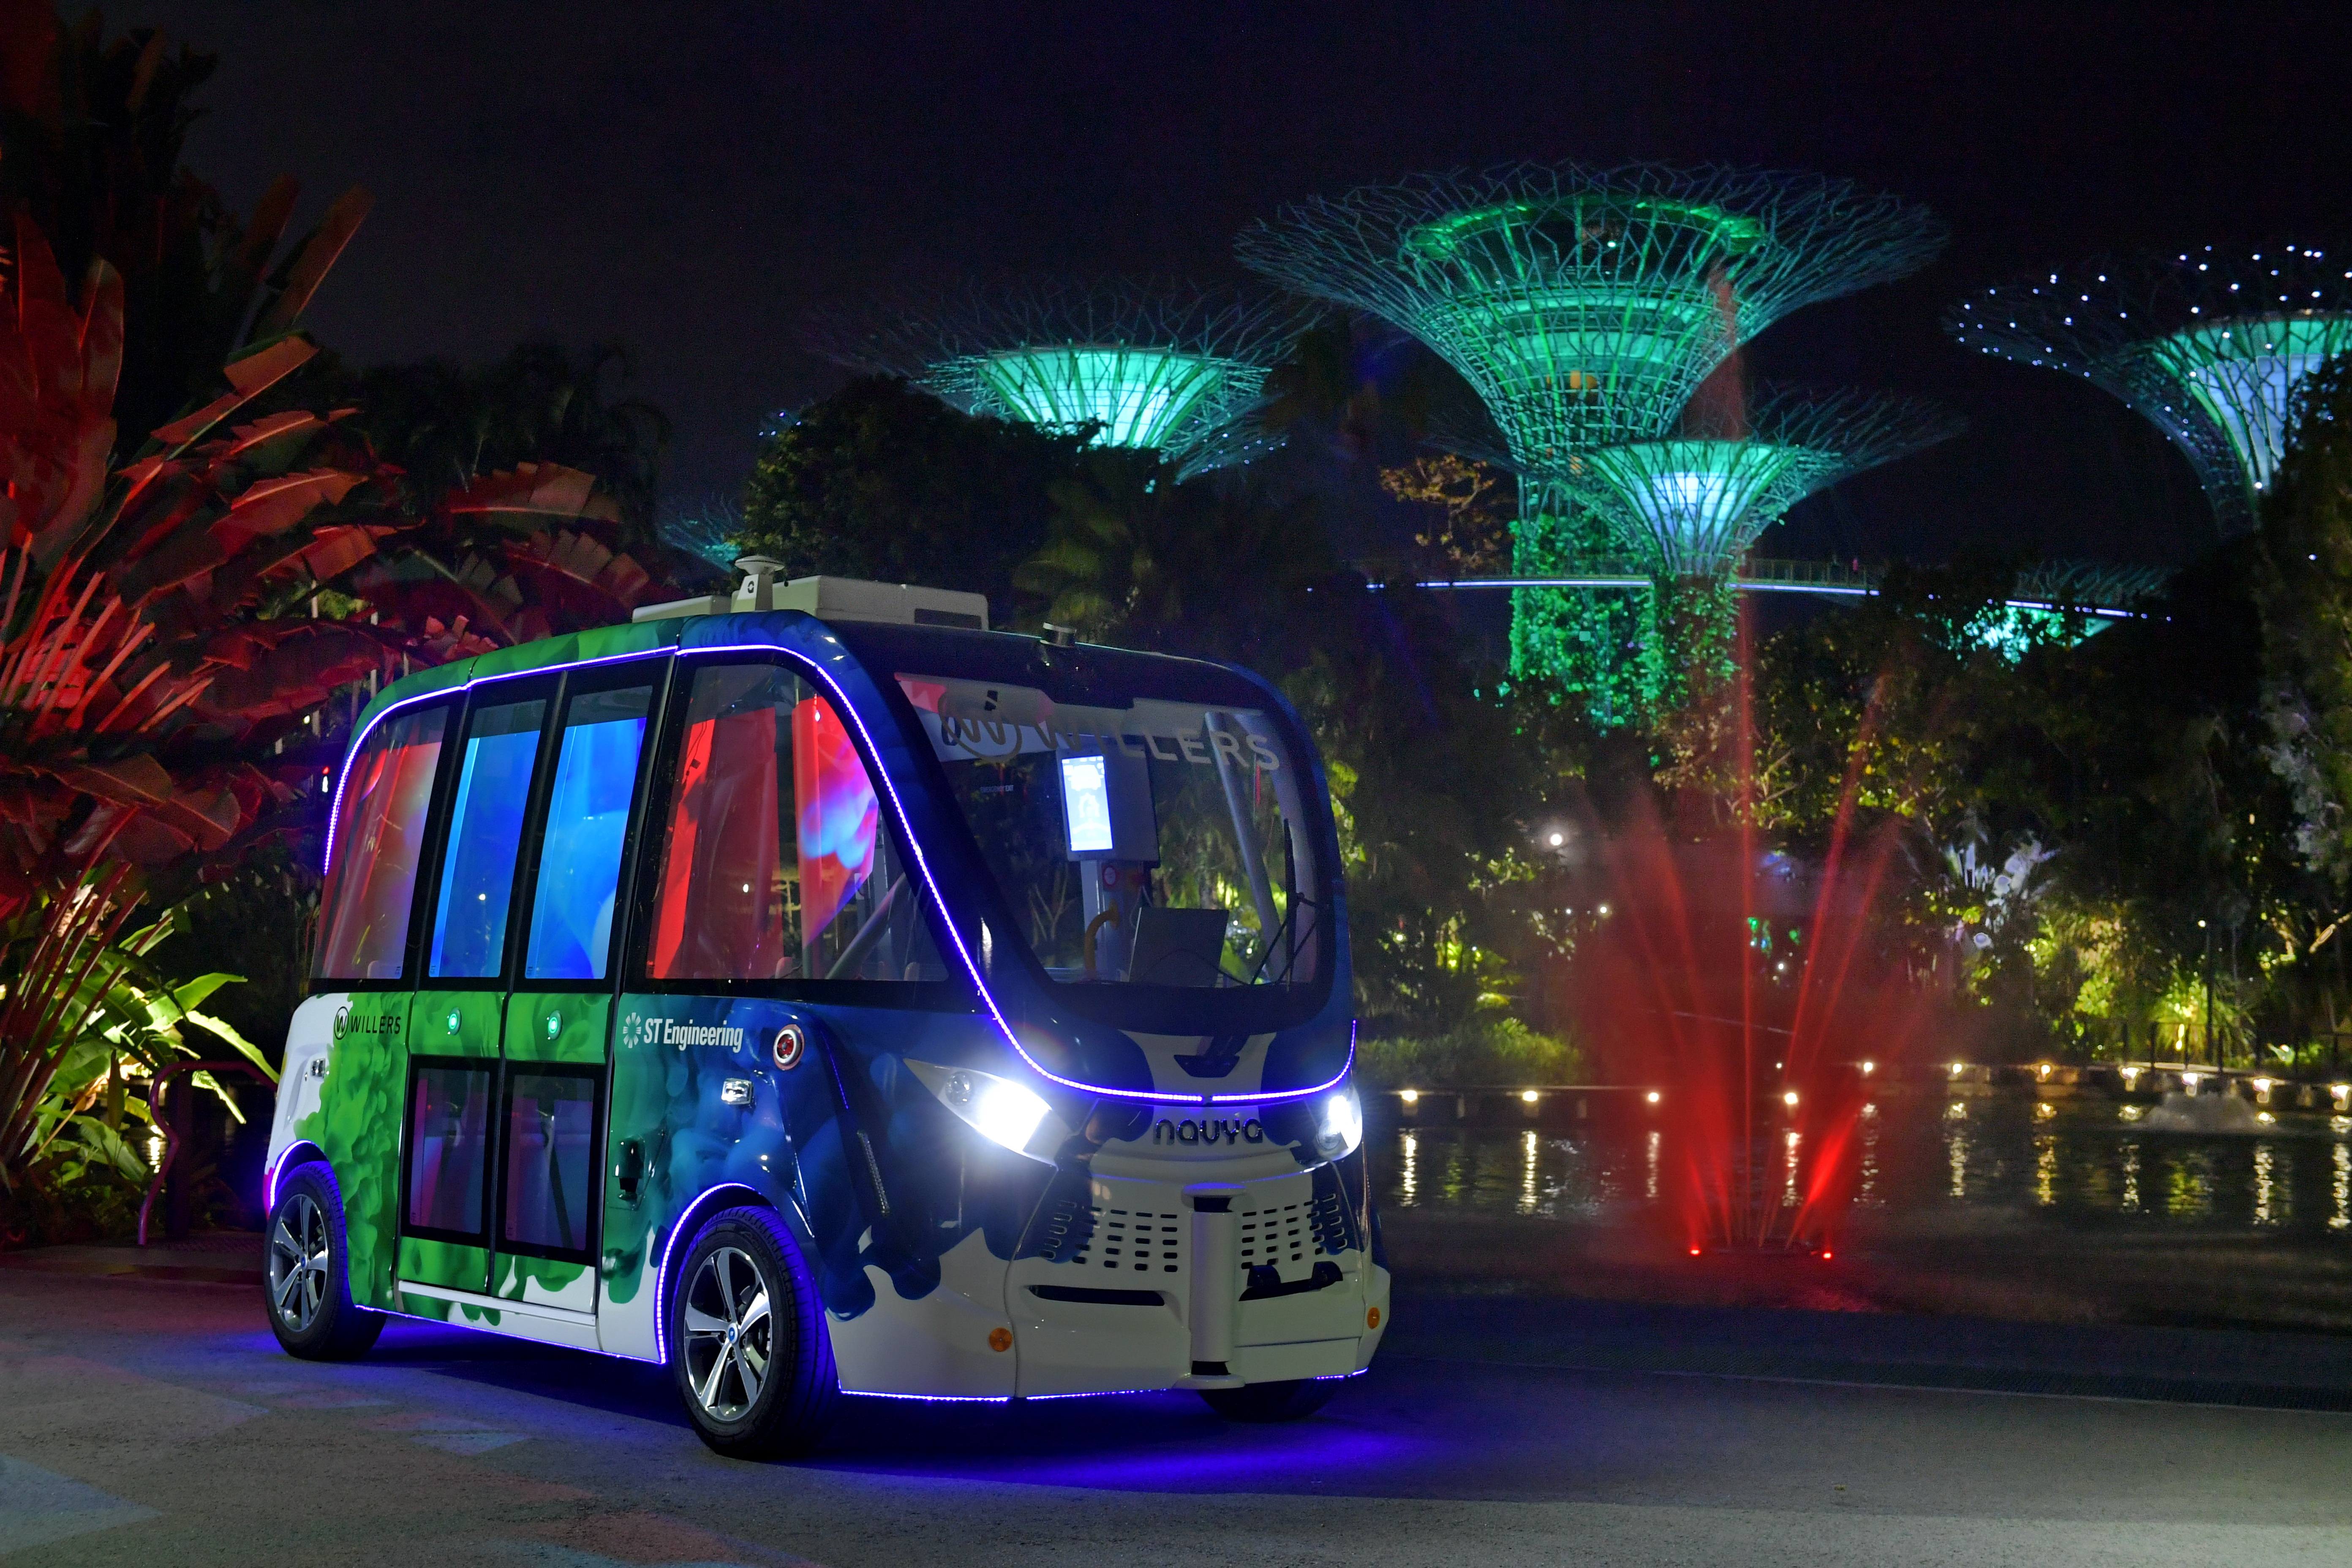 Gardens by the bay self driving vehicle